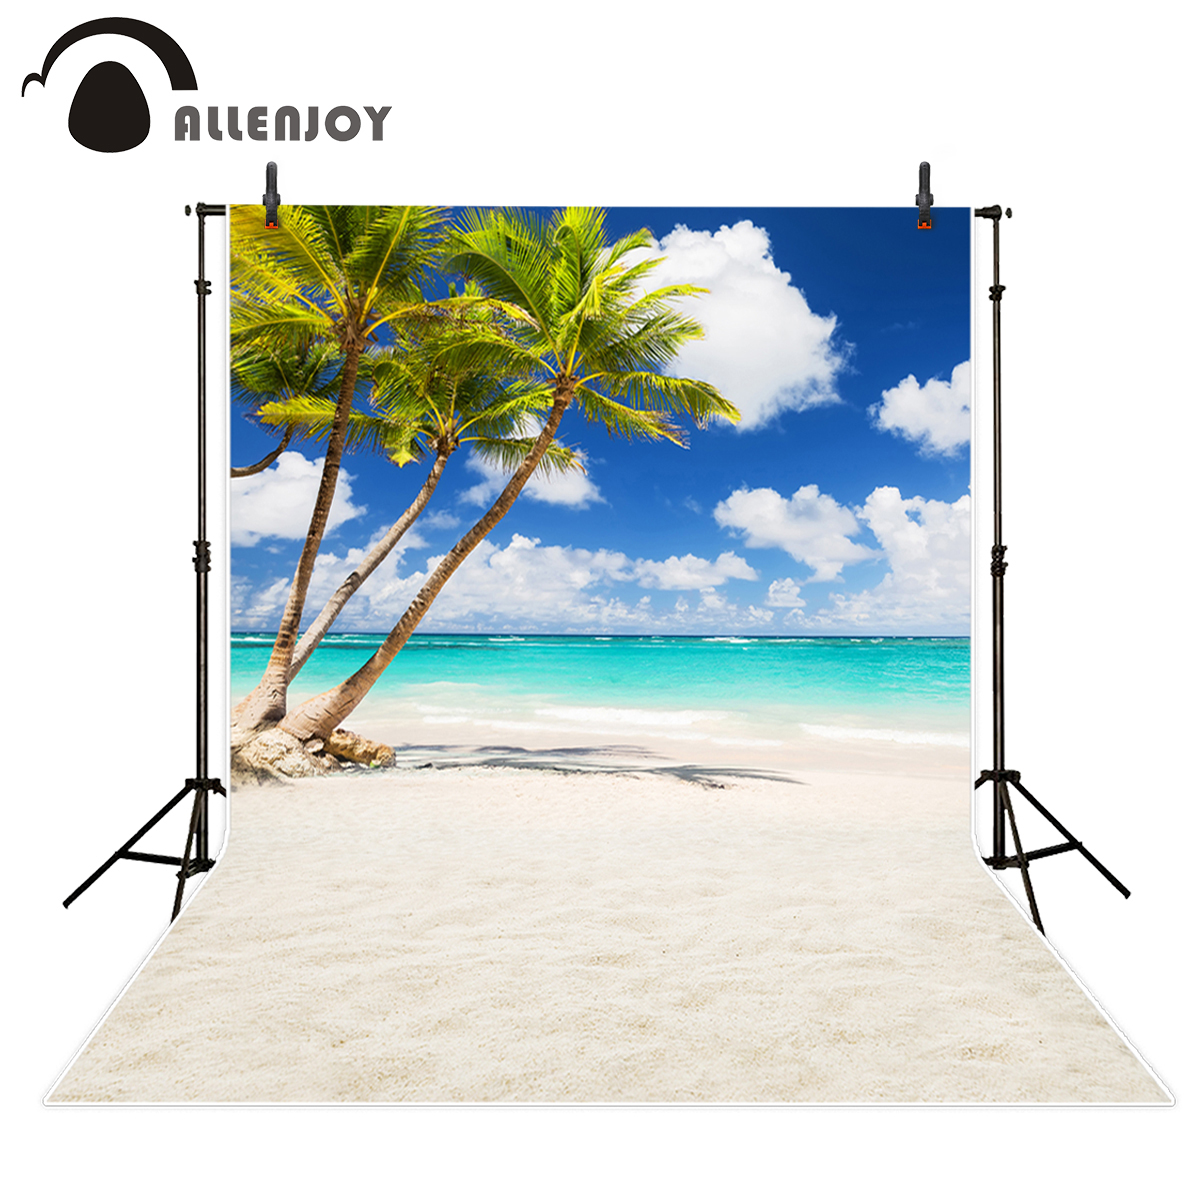 Allenjoy backgrounds for photo studio sea beach coconut tree sky cloud summer nature backdrop photobooth photocall decoration